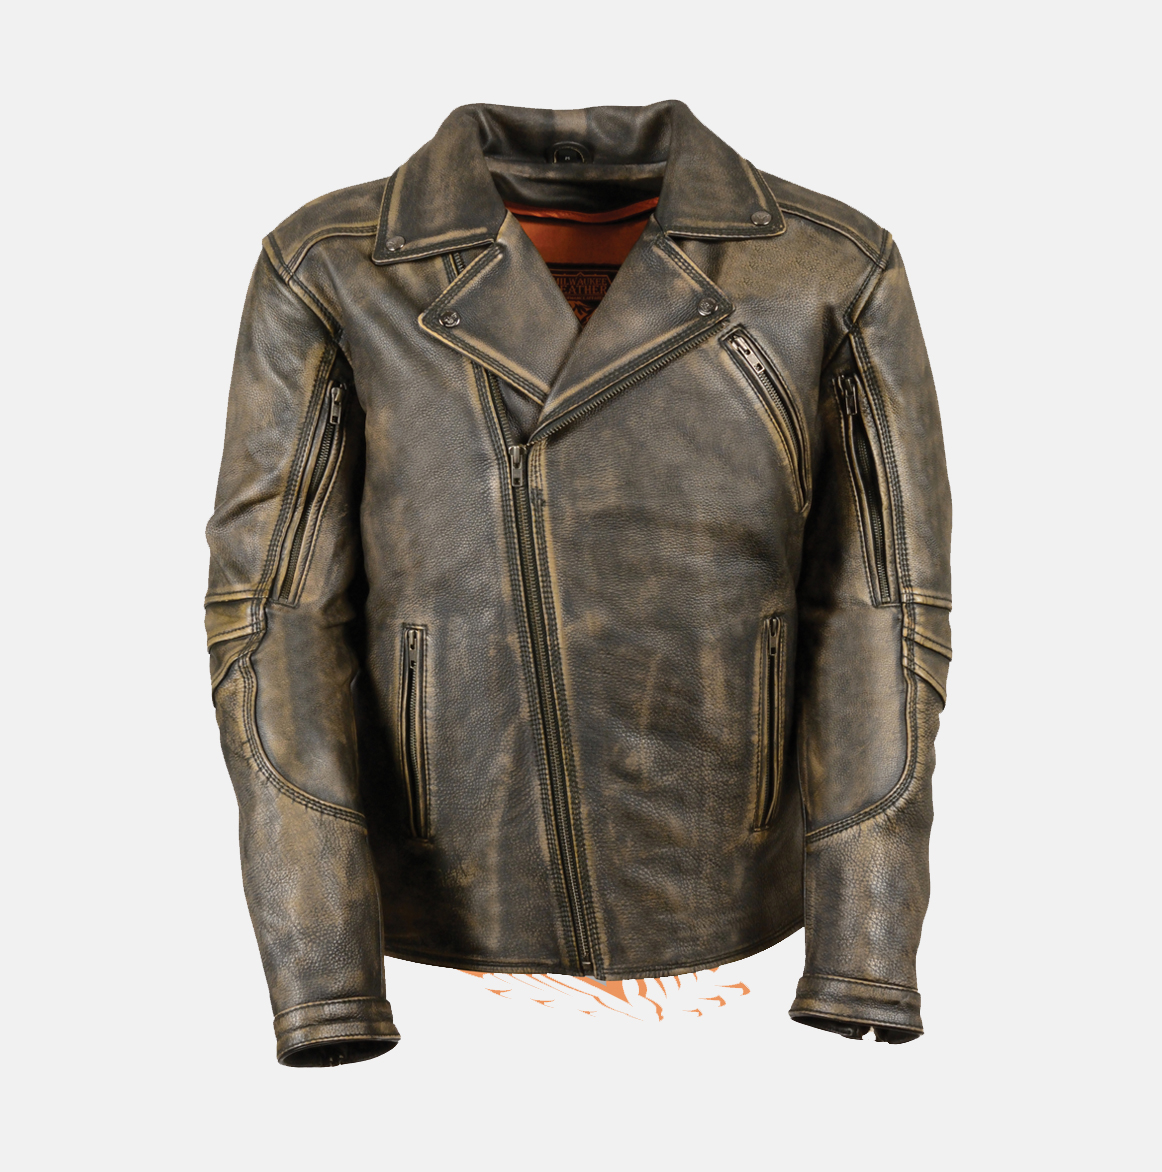 cf0e7bcd229 MEN S BROWN DISTRESSED LEATHER POLICE JACKET - Extreme Biker Wear